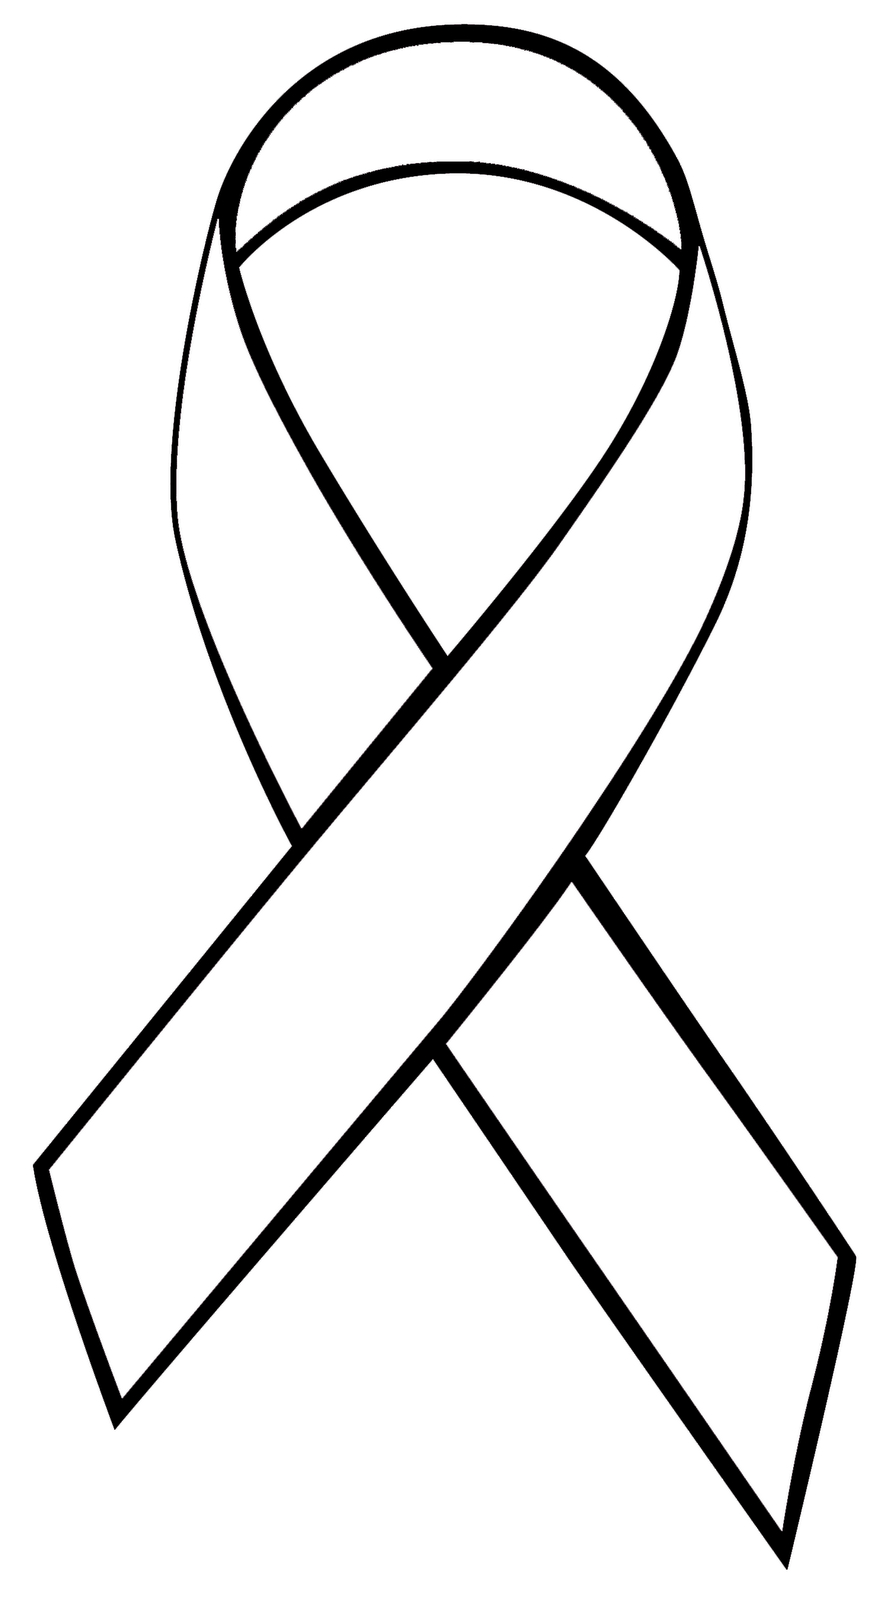 Breast Cancer Coloring Pages - Cutting Files for You Symbols for the Love Of Glass to Print